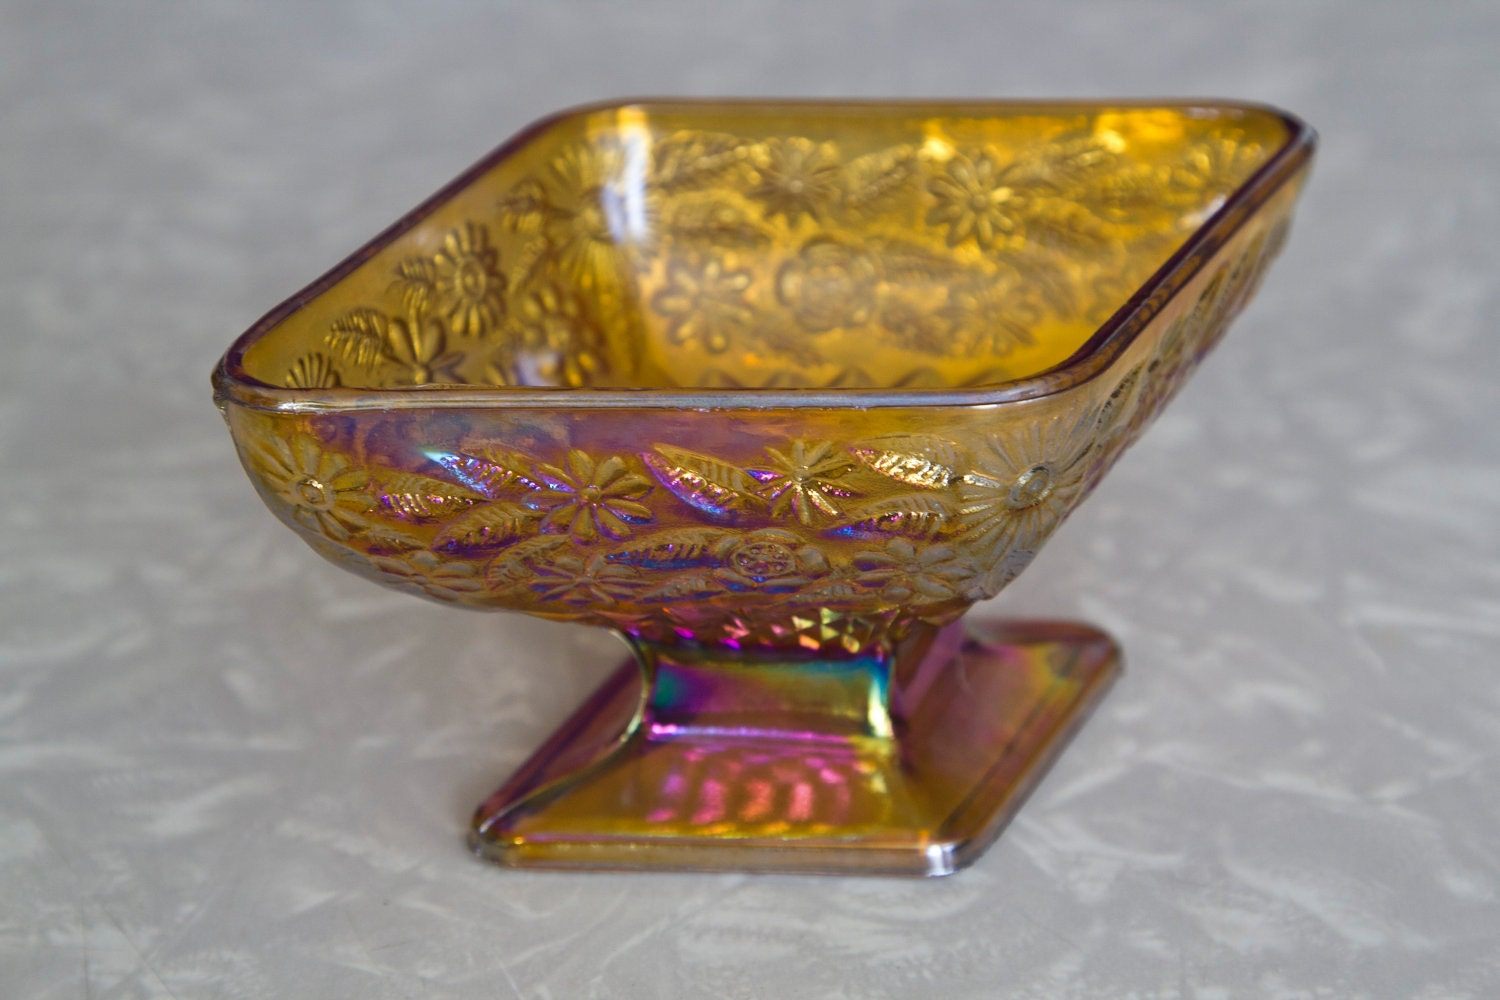 SALE Amber Carnival Glass Candy Dish